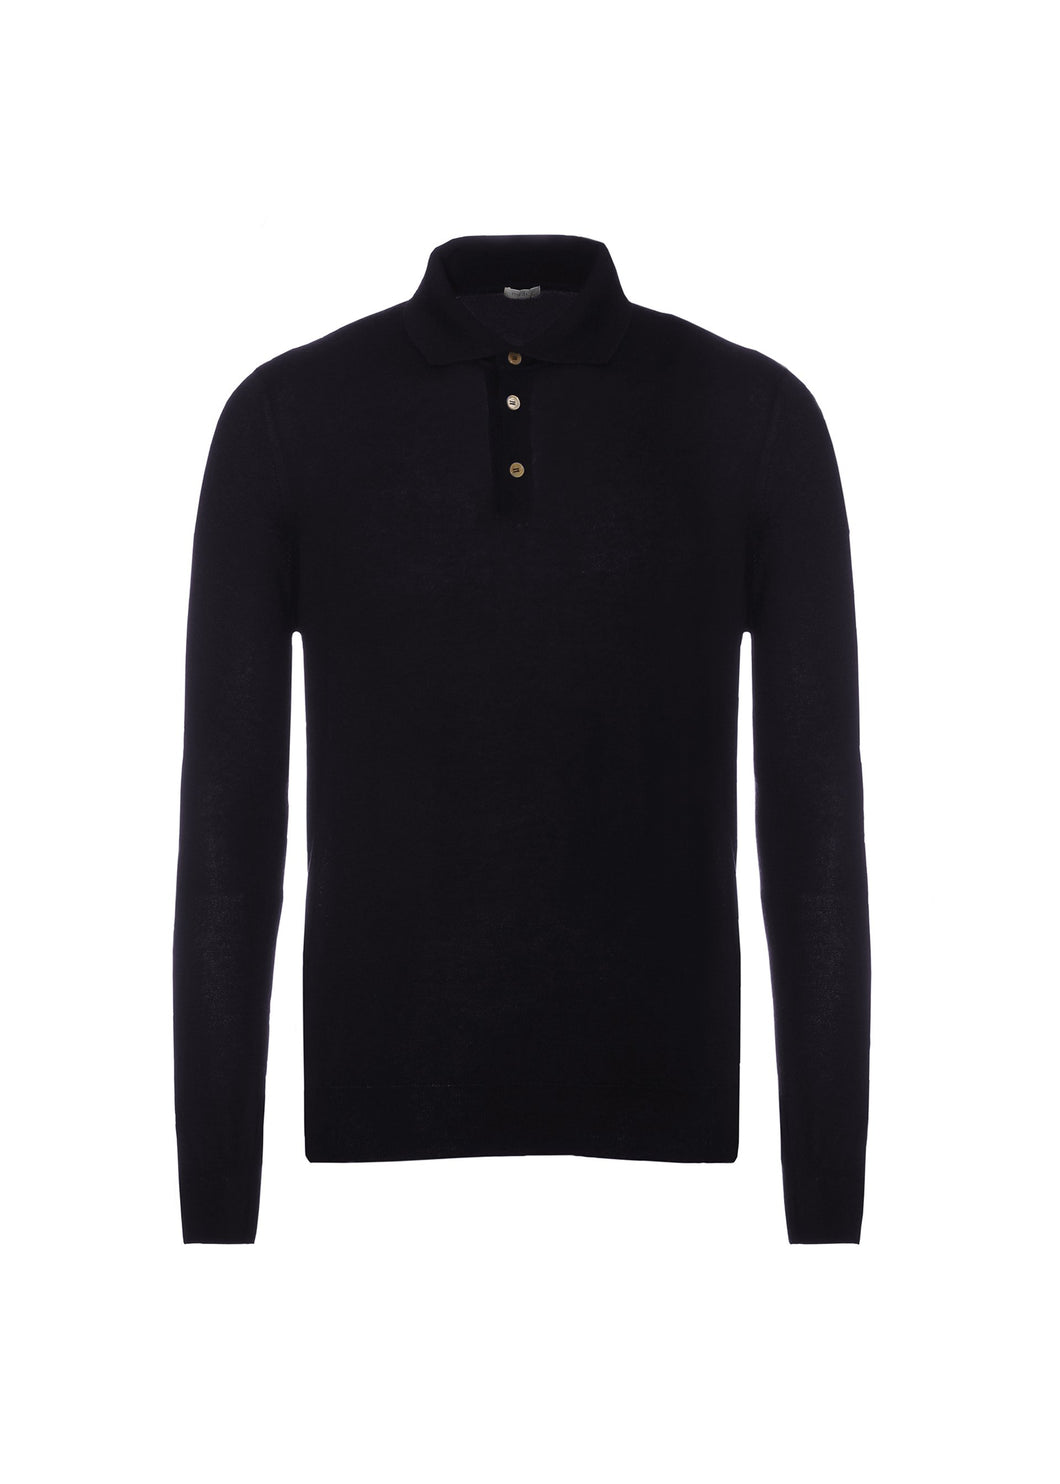 French polo in light cashmere